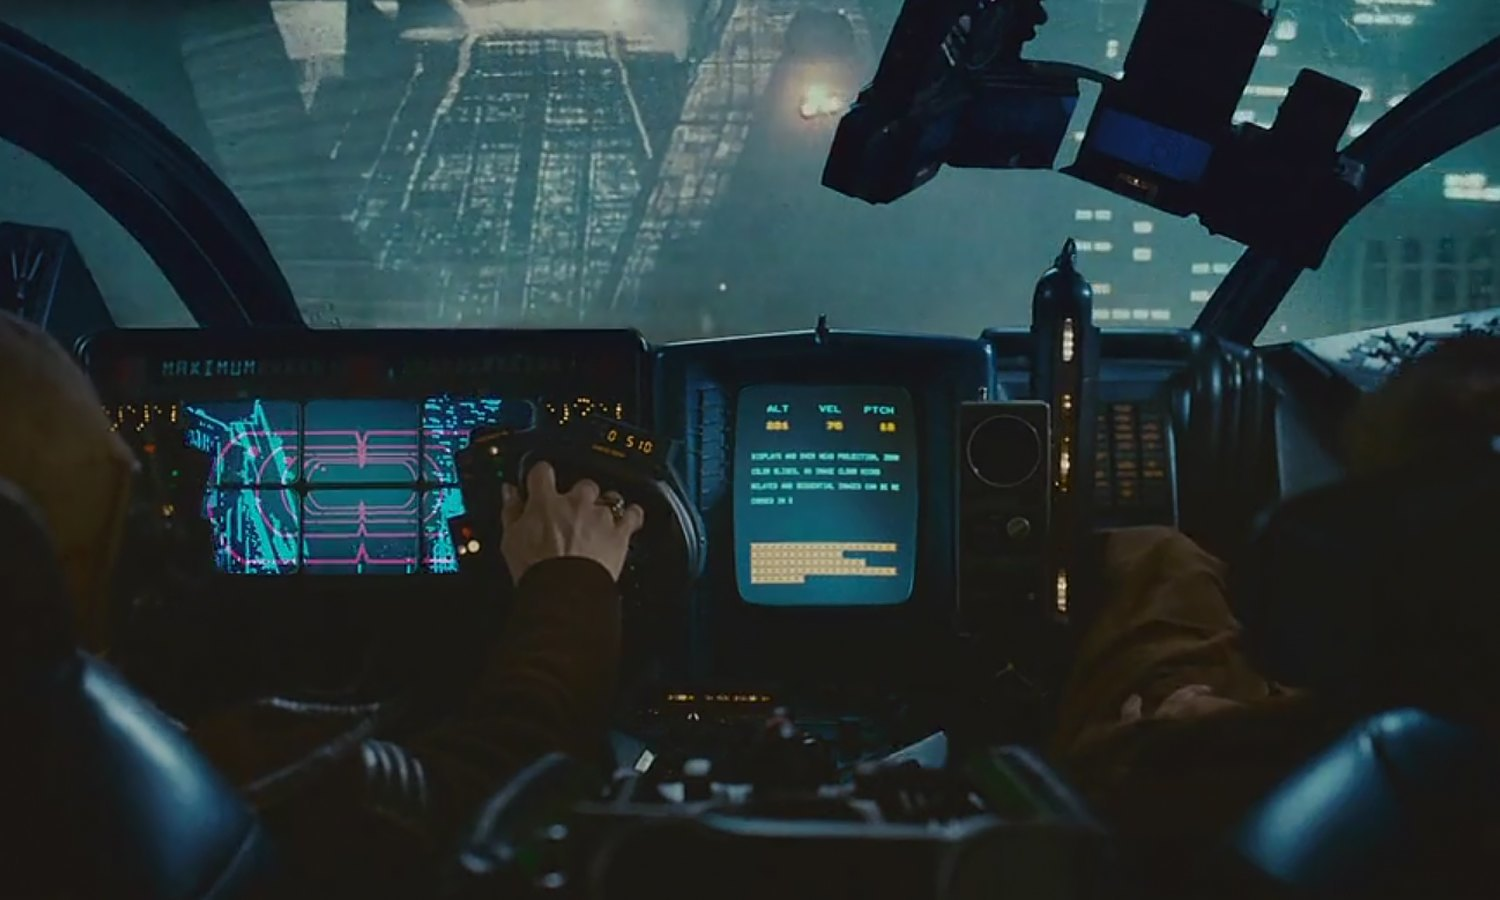 The ultimate guide to analog control panels in sci-fi movies. Image 10.